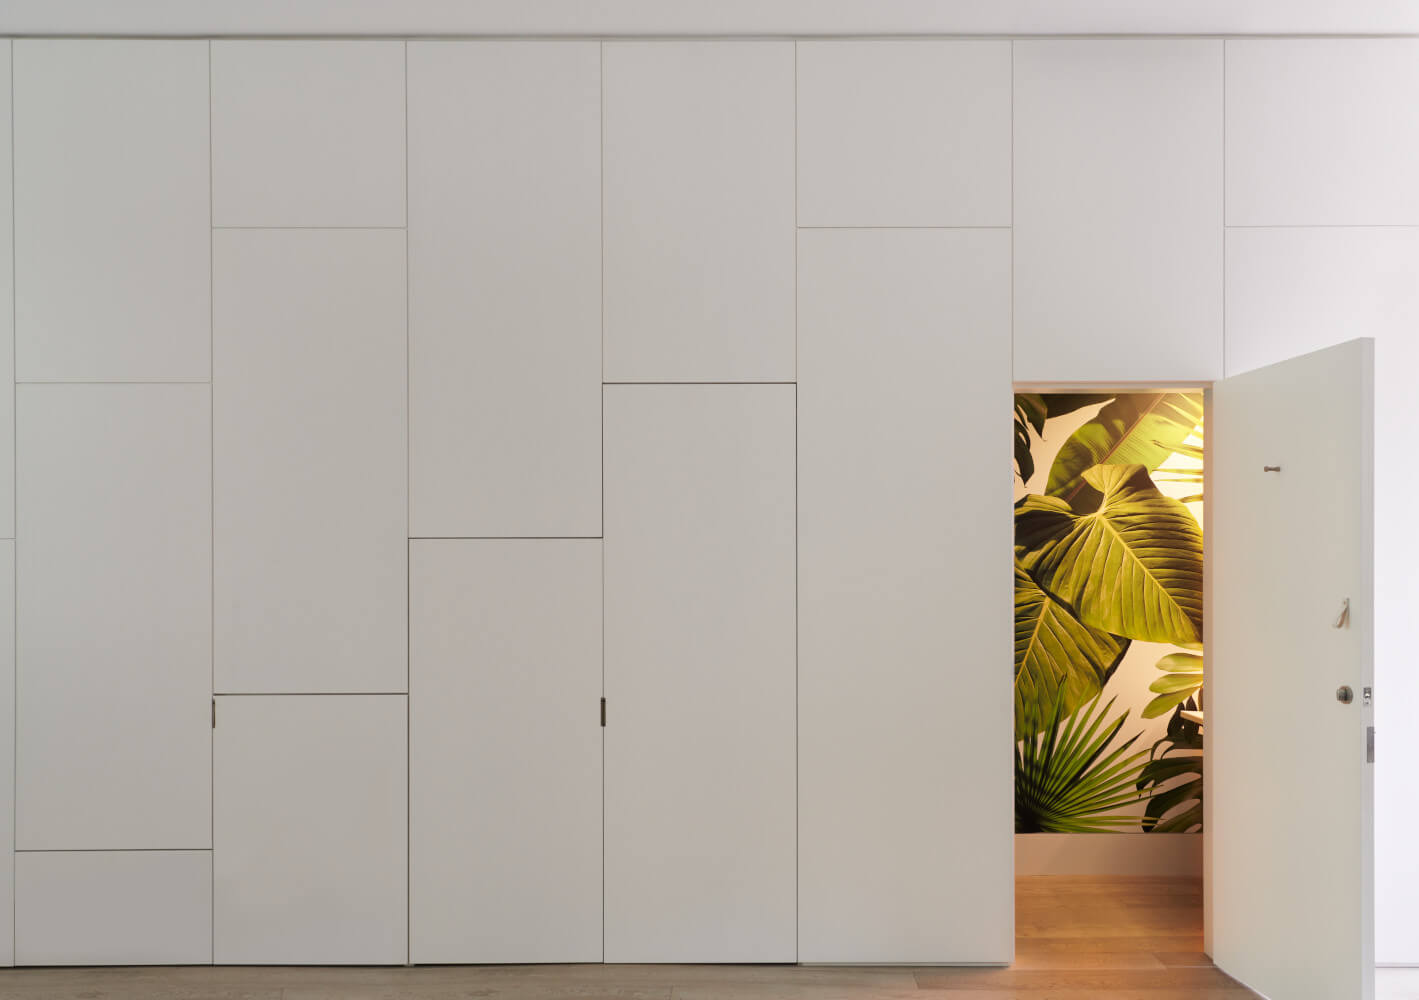 wall of white lacquer panels conceals a pantry, a coat closet, and a verdant powder room.